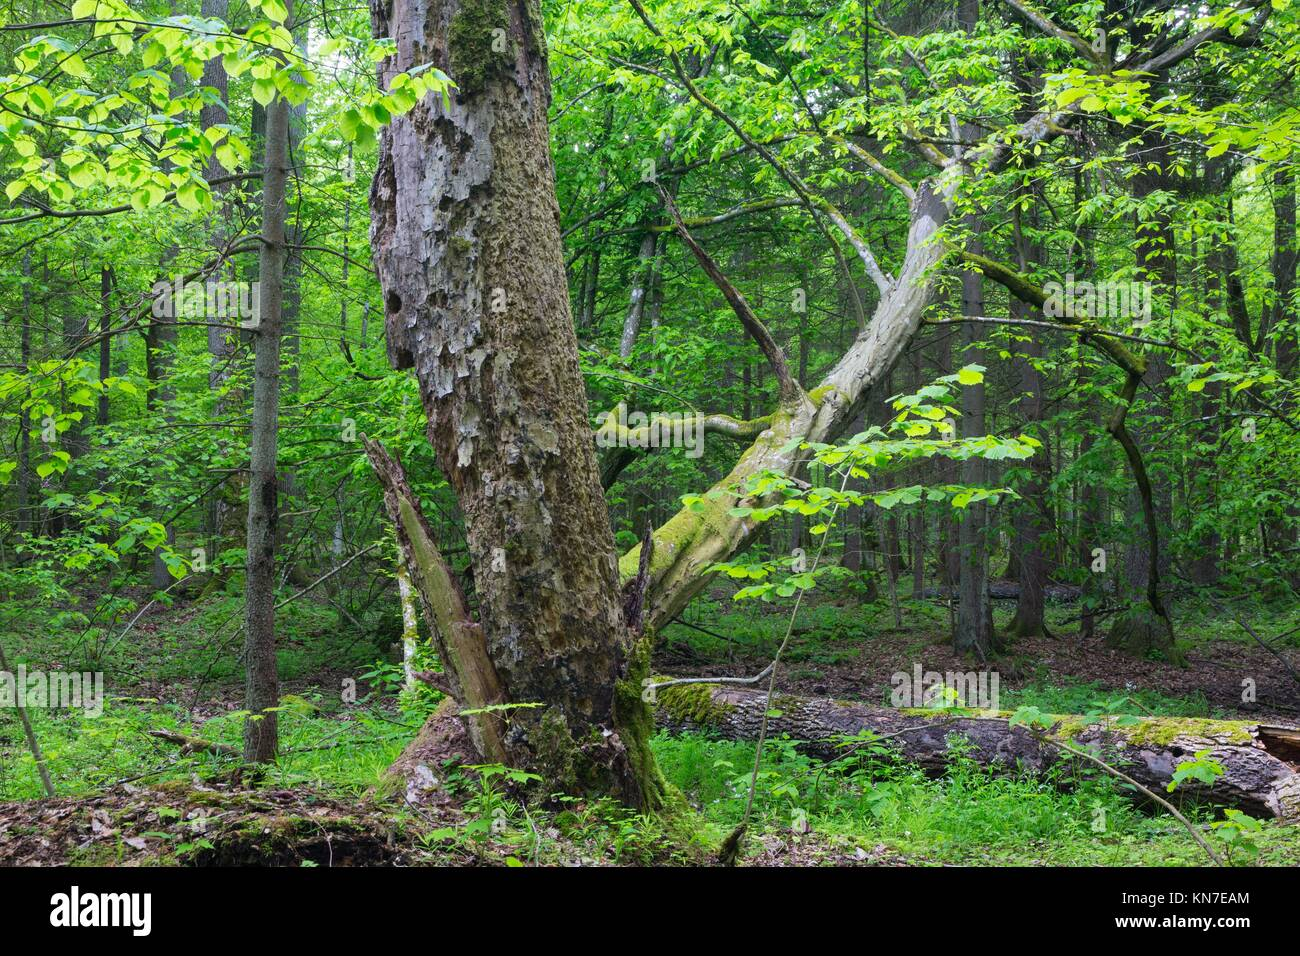 Old monumental Hornbeam Tree(Carpinus betulus) in front of juvenile deciduous stand of Bialowieza Forest in summer, - Stock Image